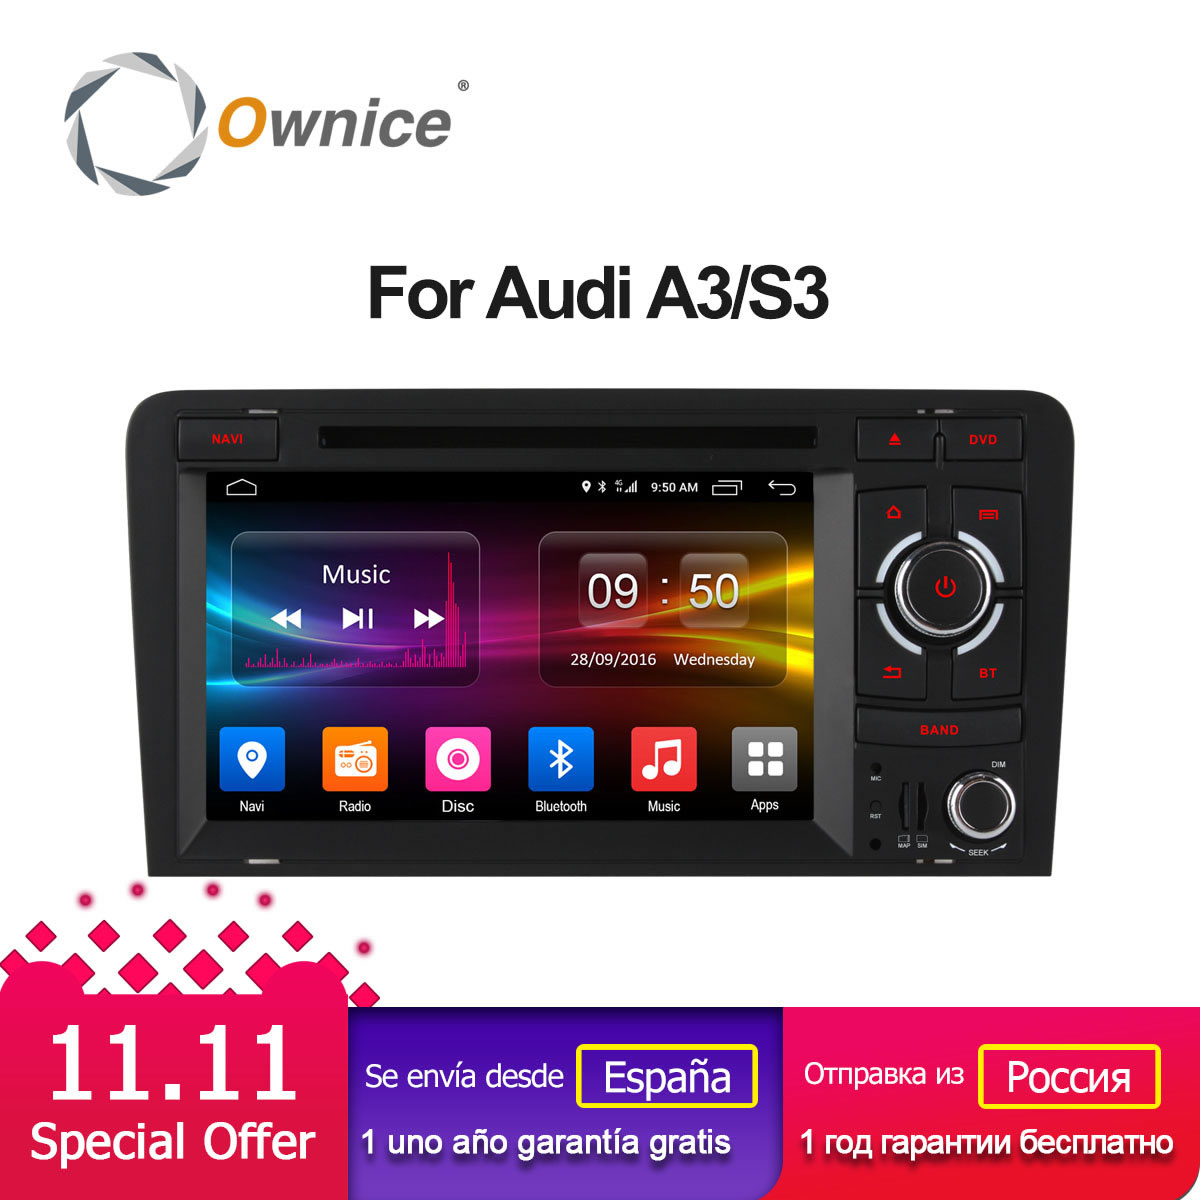 Ownice C500 4G SIM LTE Android 6.0 2 Din 7 Car DVD Player For Audi A3 S3 2002 2011 Radio GPS Navi BT 2GB RAM 16GB ROM Quad Core